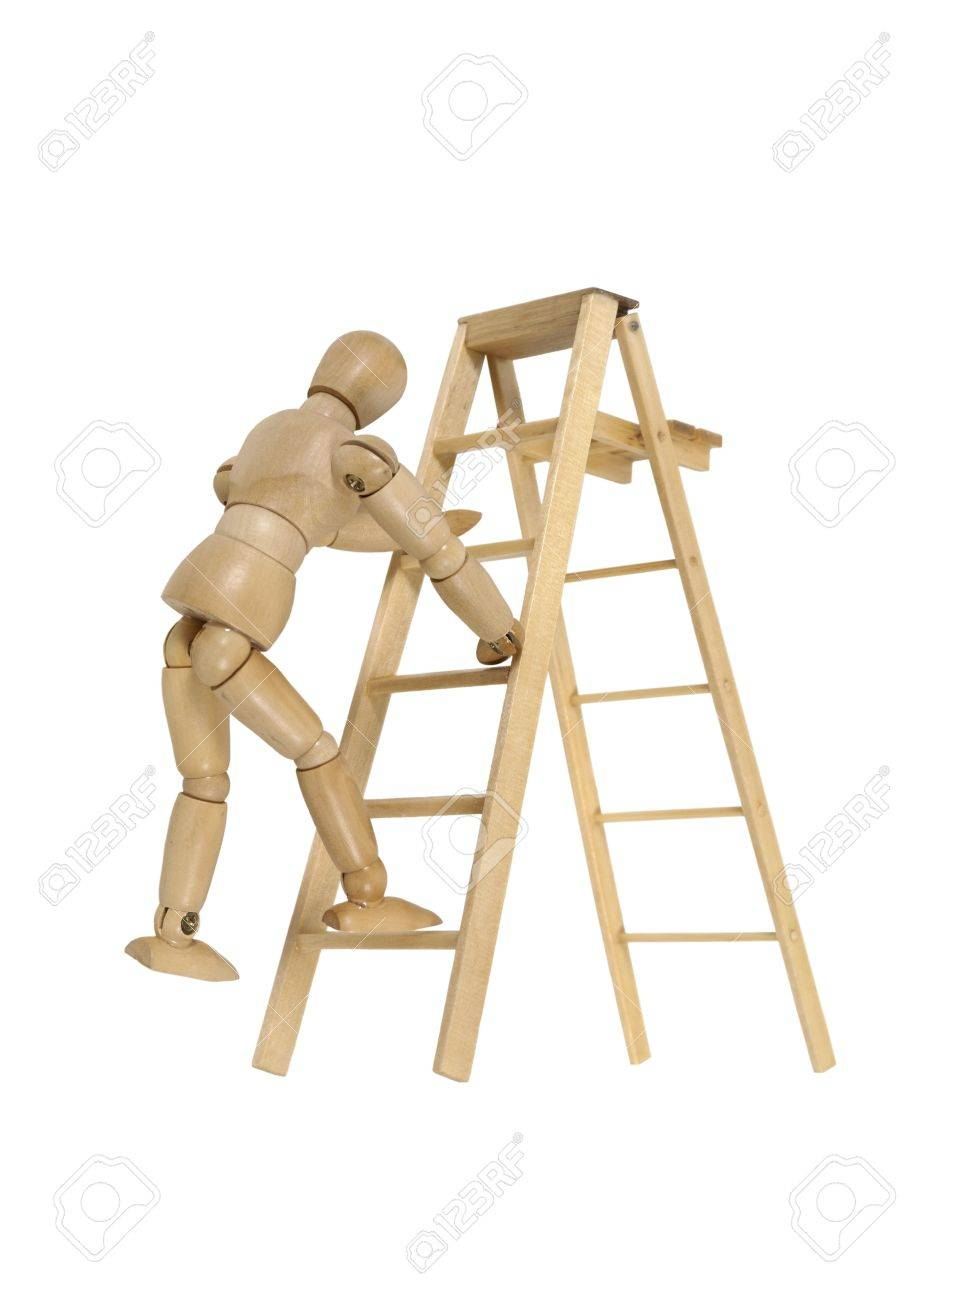 climbing a ladder used for moving up or reaching higher goals stock photo 7764996